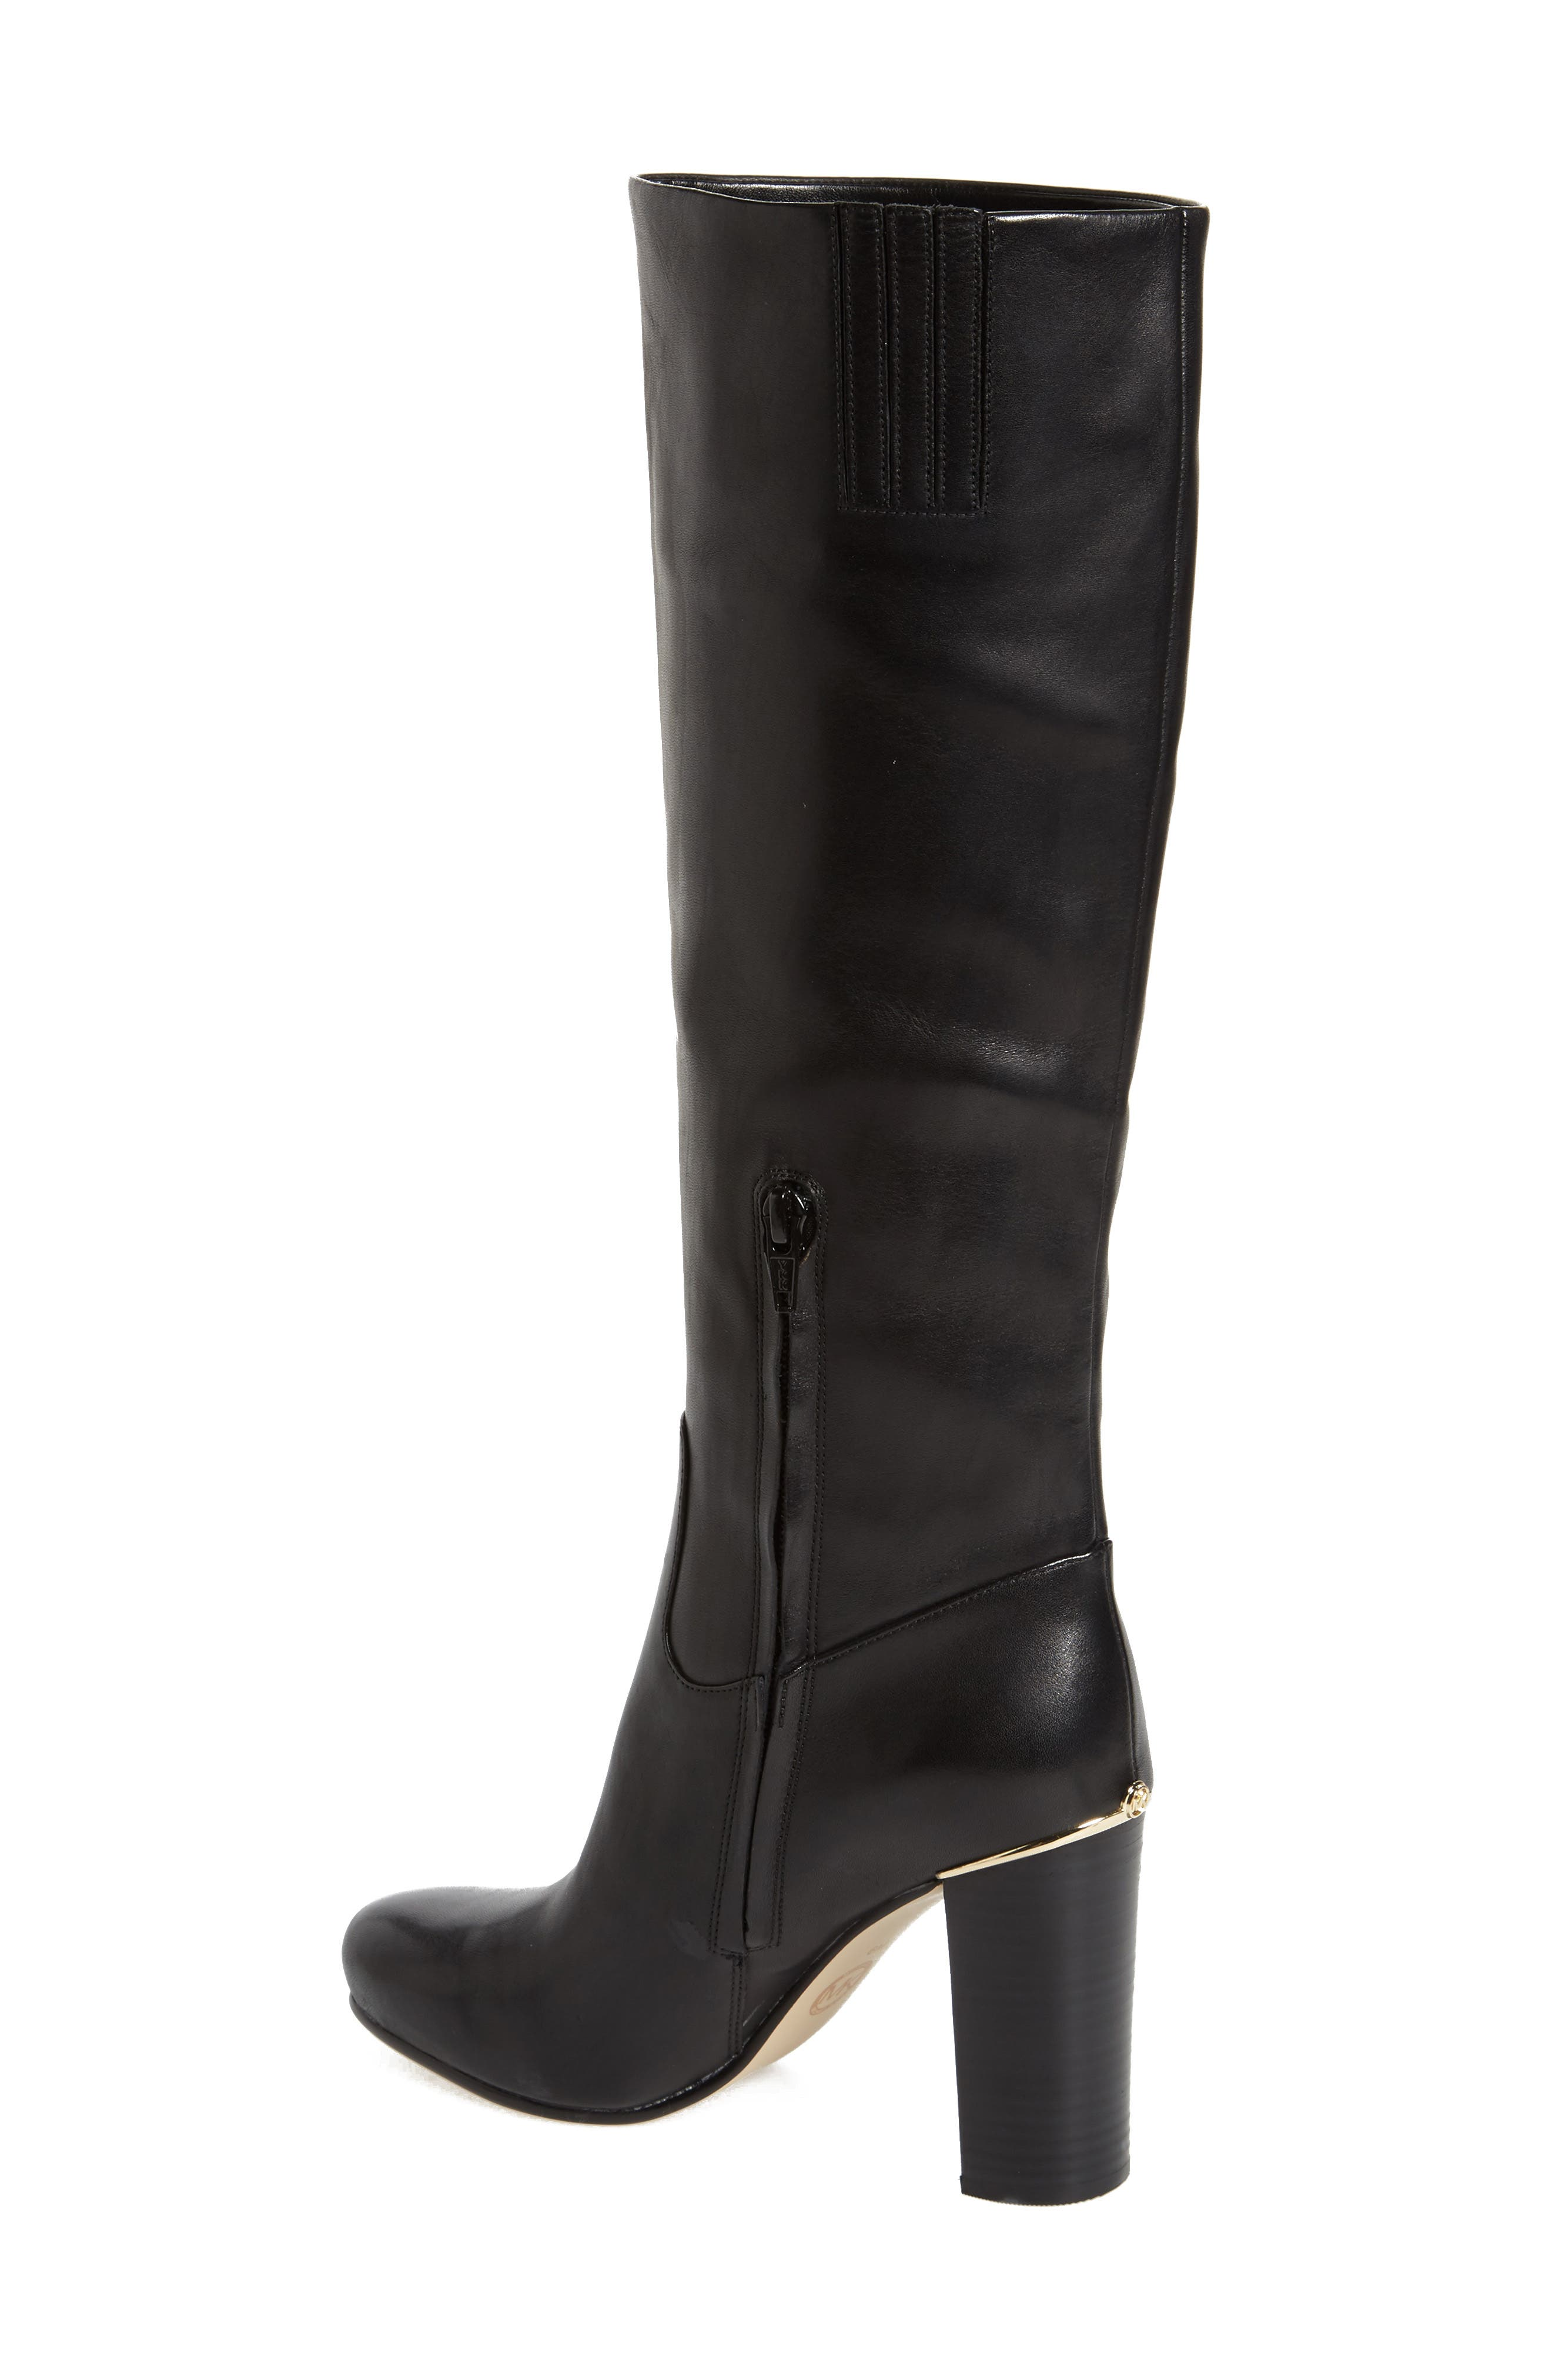 Janice Knee High Boot,                             Alternate thumbnail 2, color,                             Black Calf Leather